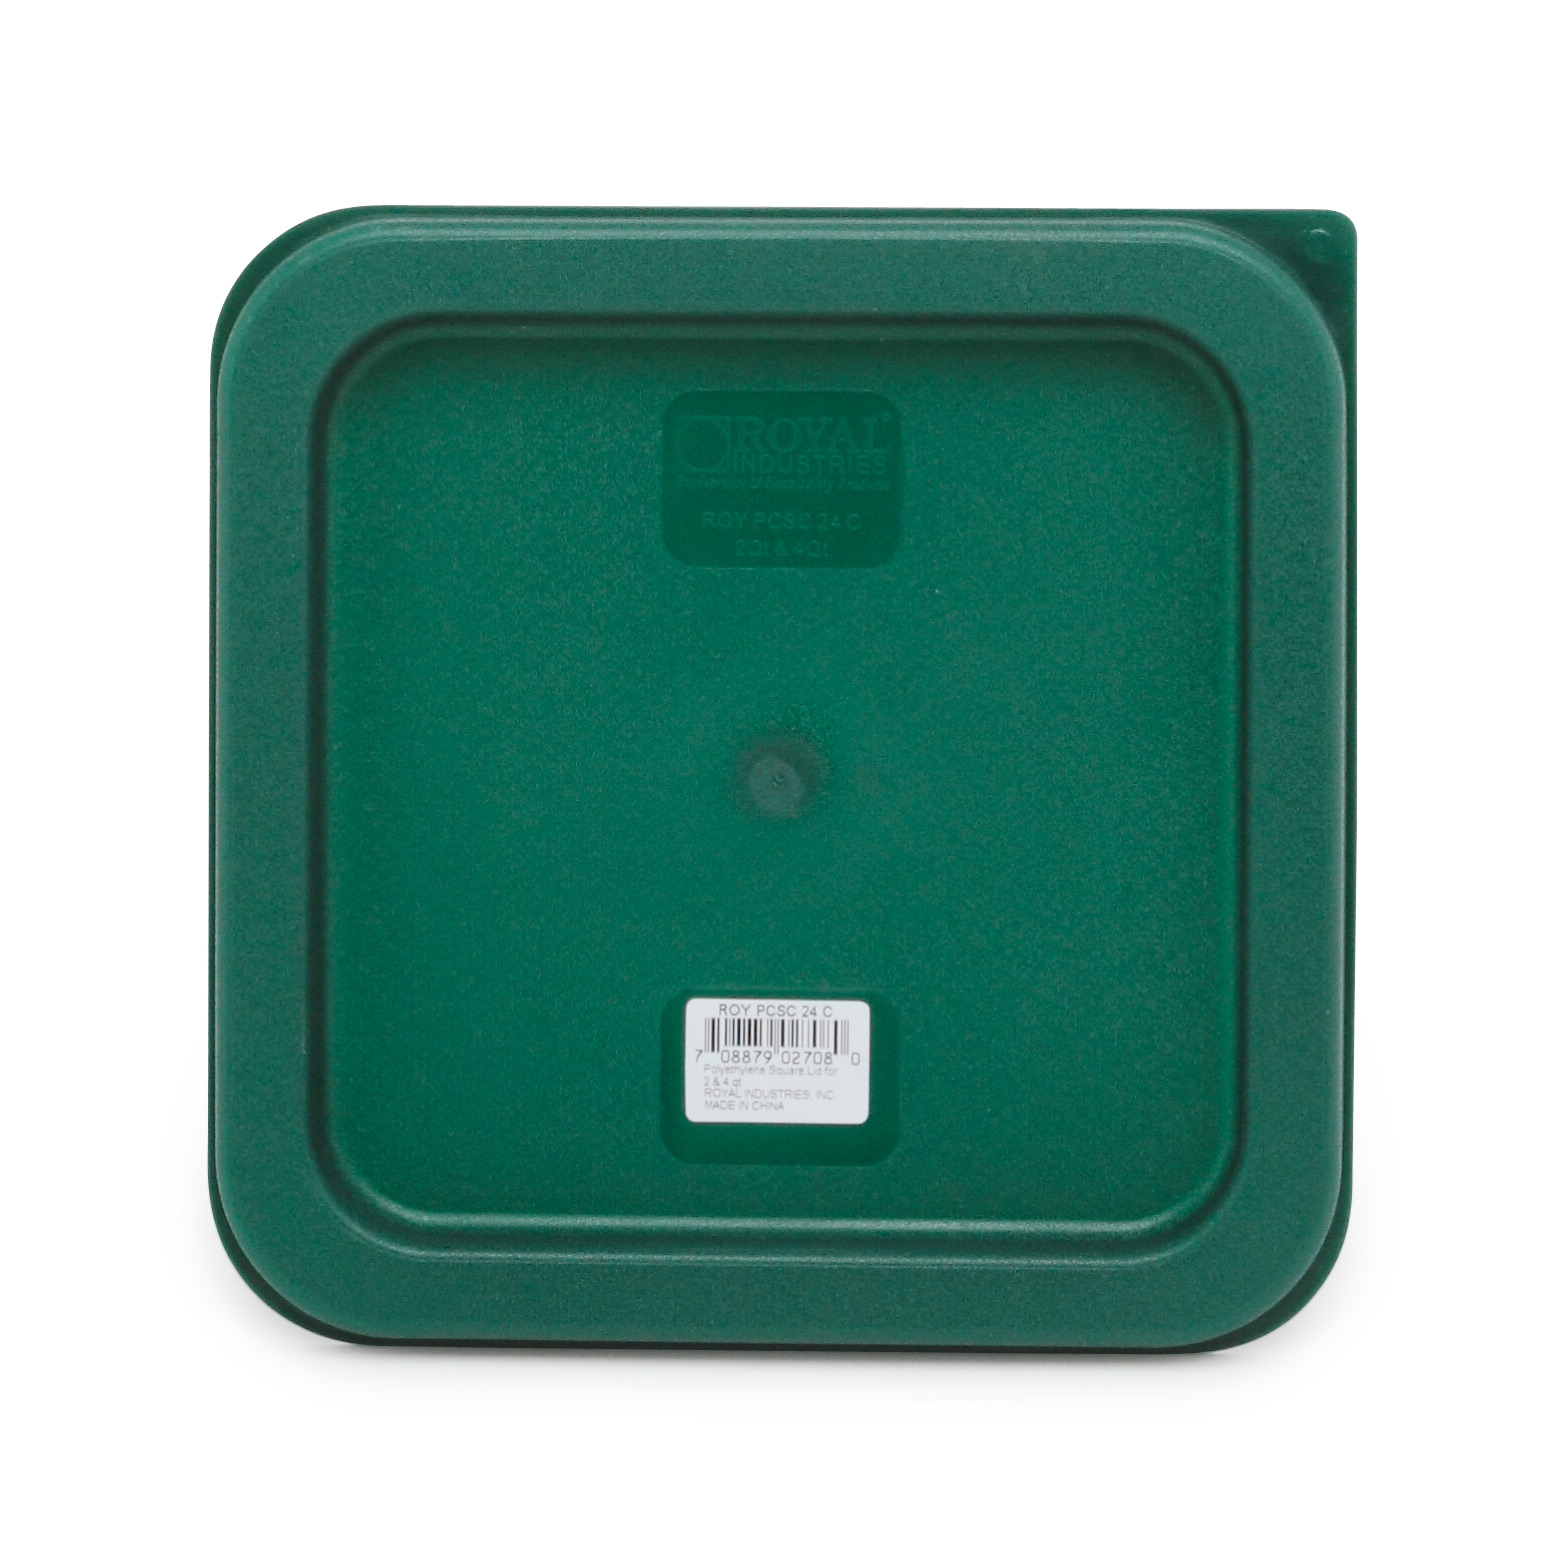 Royal Industries ROY PCSC 24 C food storage container cover